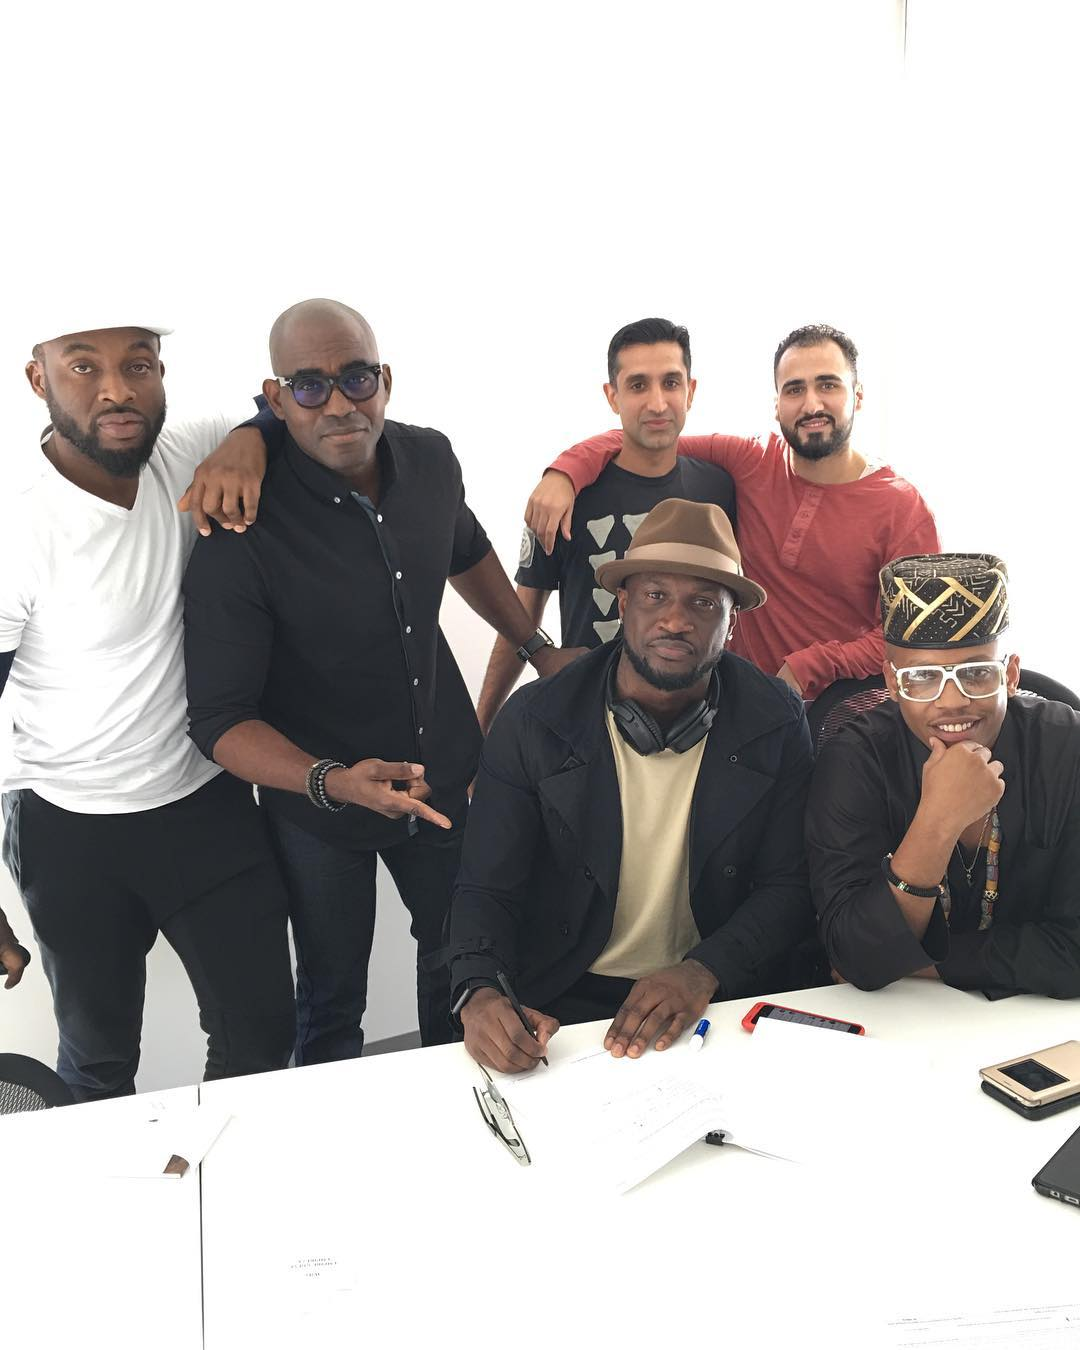 Empire Record Label Artists : empire, record, label, artists, Peter, Okoye, Signs, American, Distribution, Company, Record, Label, Empire, BellaNaija